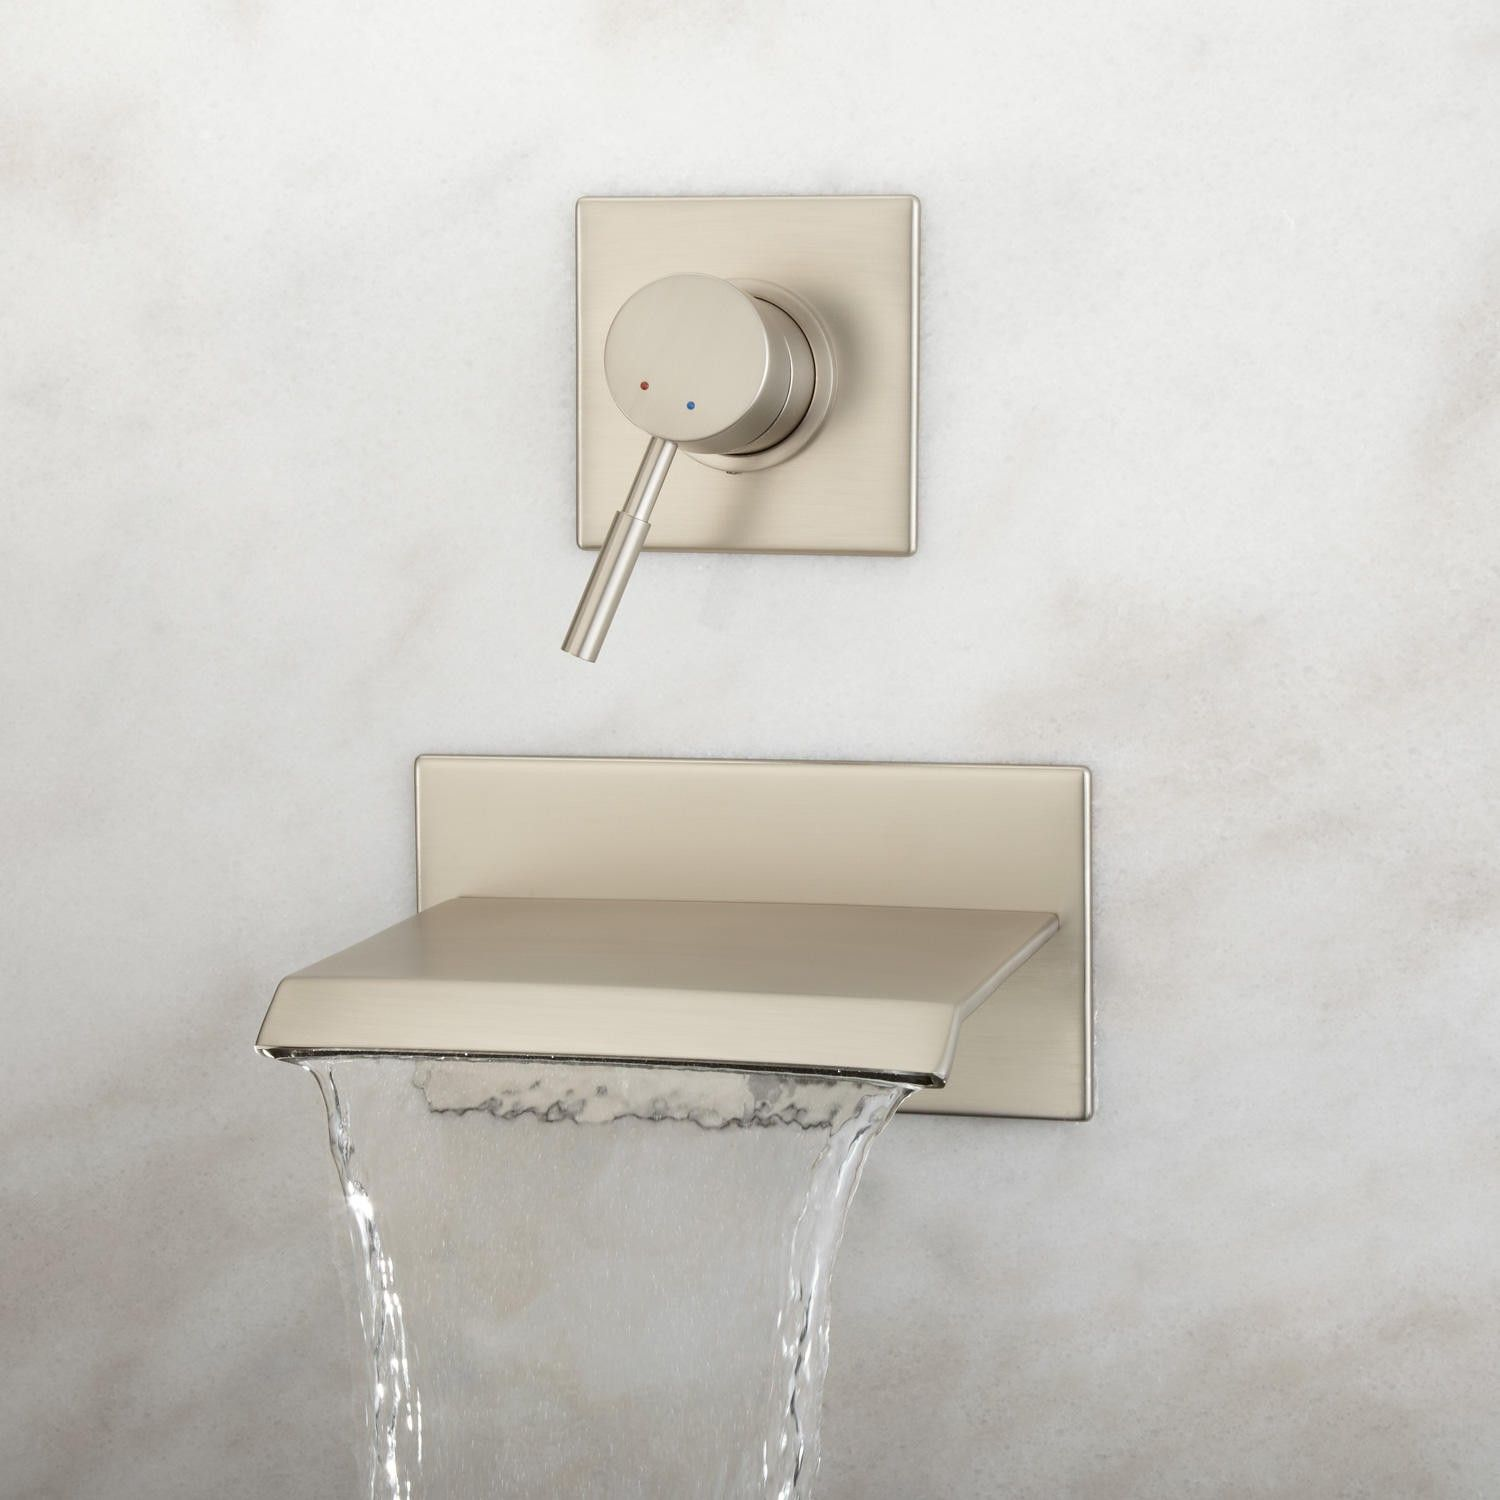 lavelle wallmount waterfall tub faucet  wall mount faucet and tubs - lavelle wallmount waterfall tub faucet